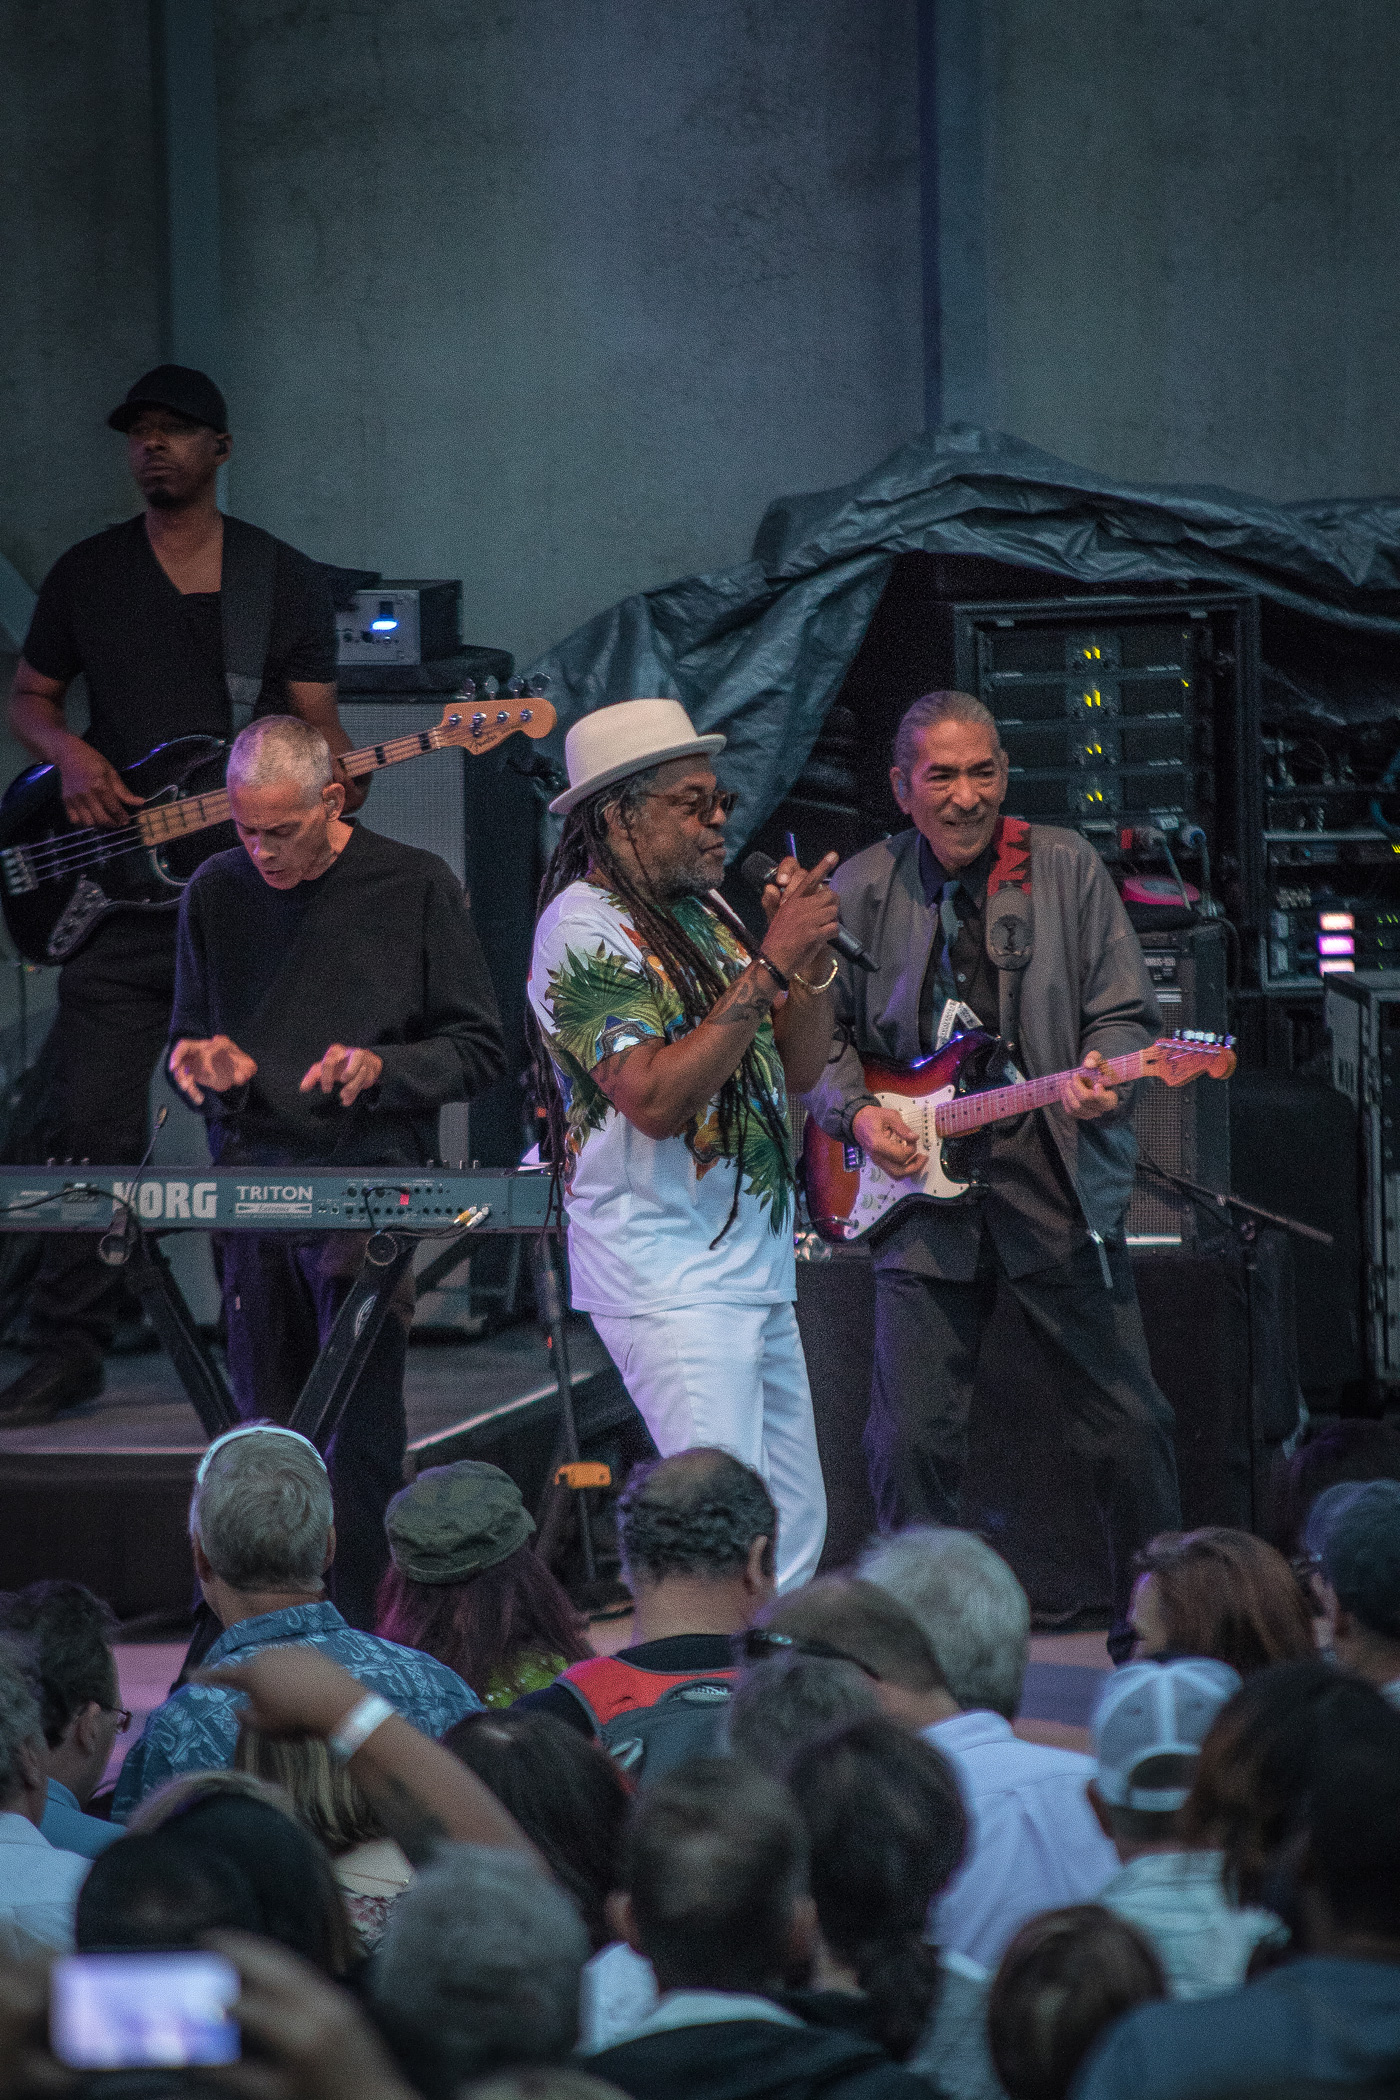 UB40 Concert Photos - Levitt Pavilion Denver 2017